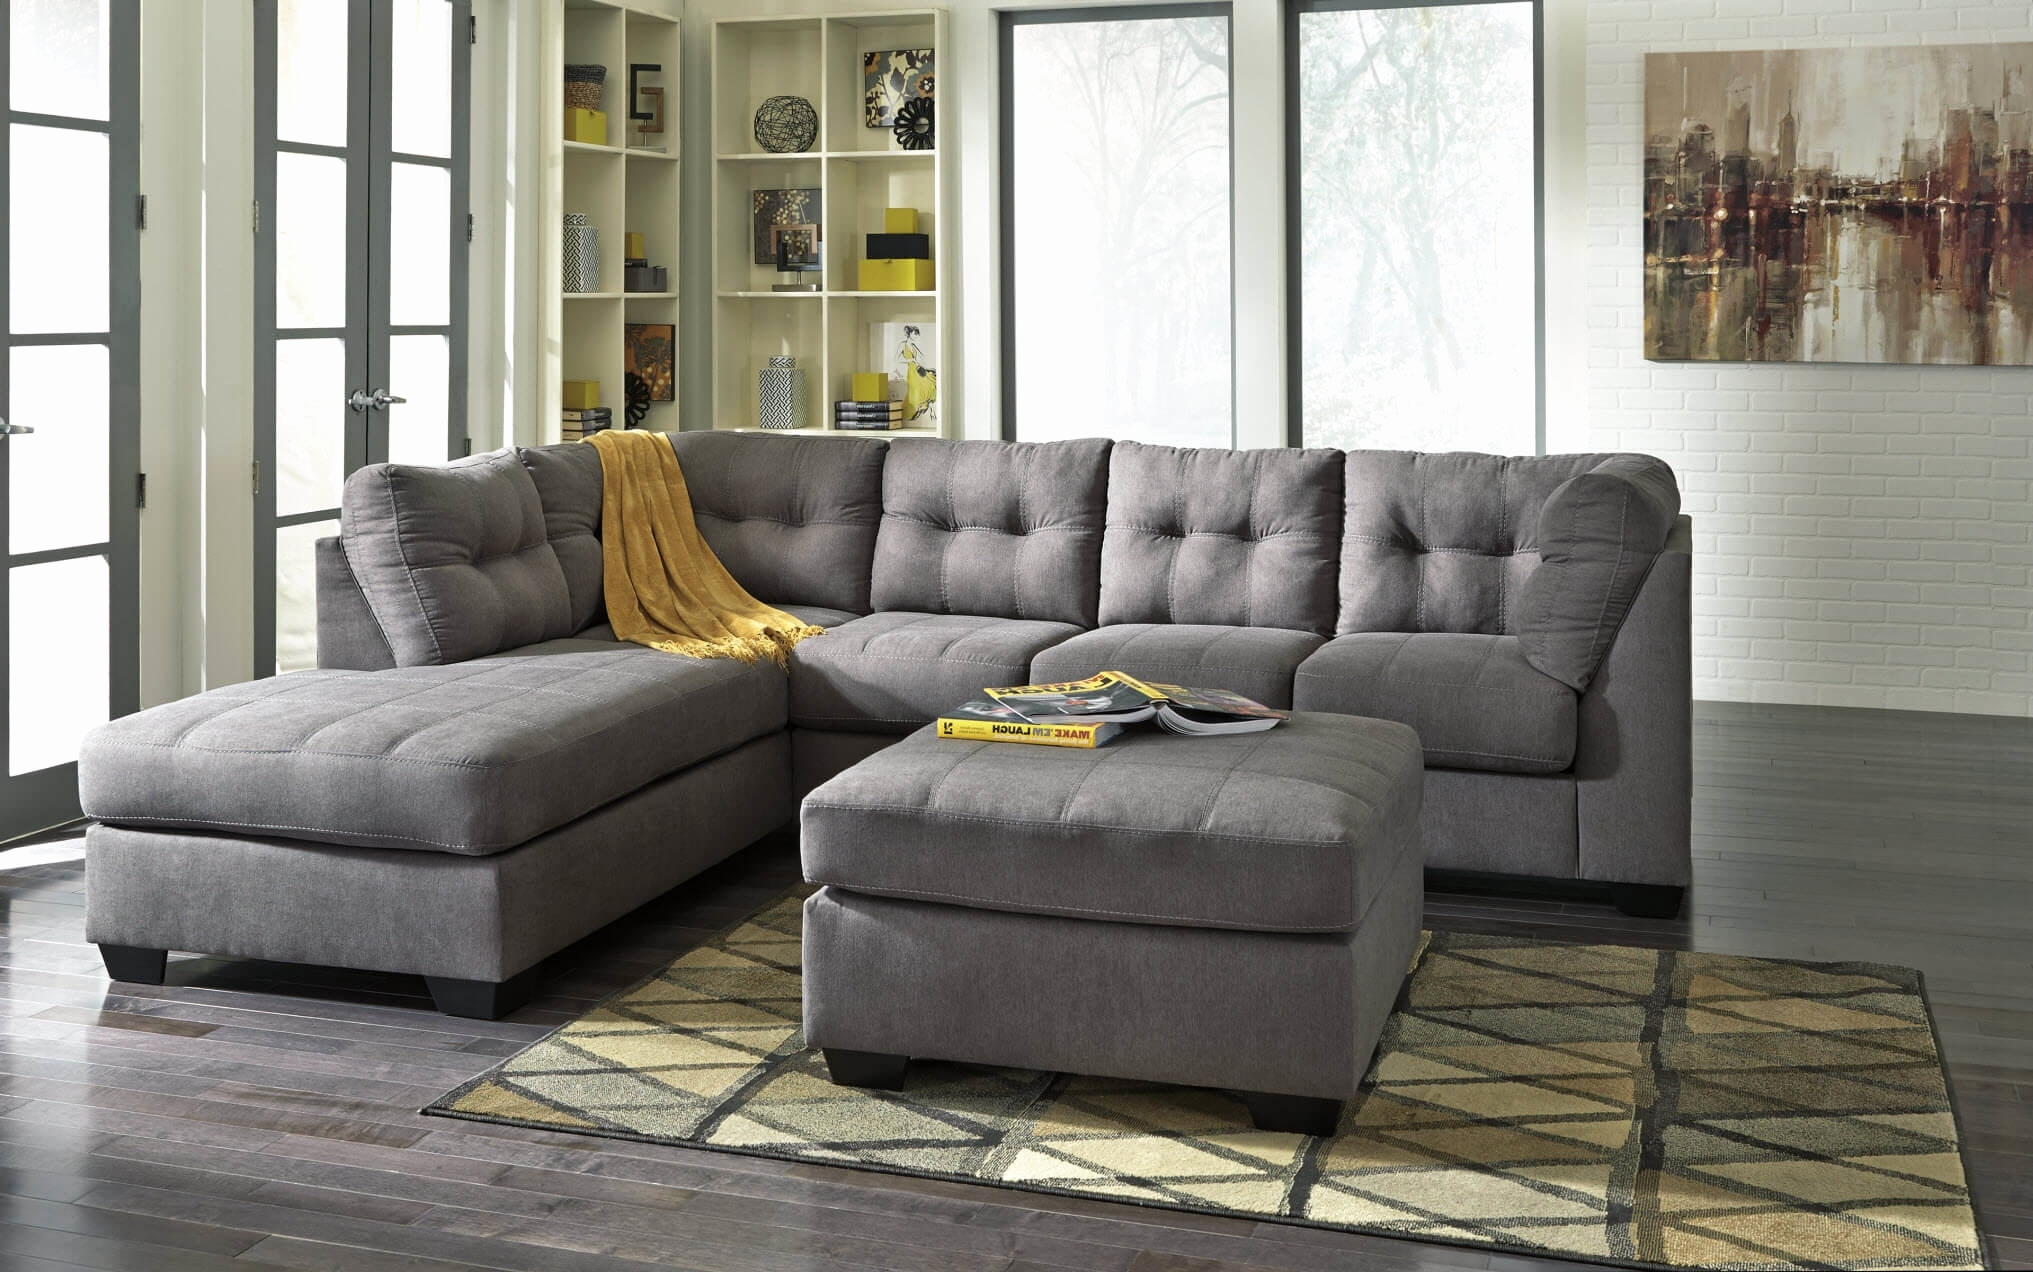 Sectional Sofa Furniture Row Archives – Seatersofa Throughout Furniture Row Sectional Sofas (View 4 of 10)